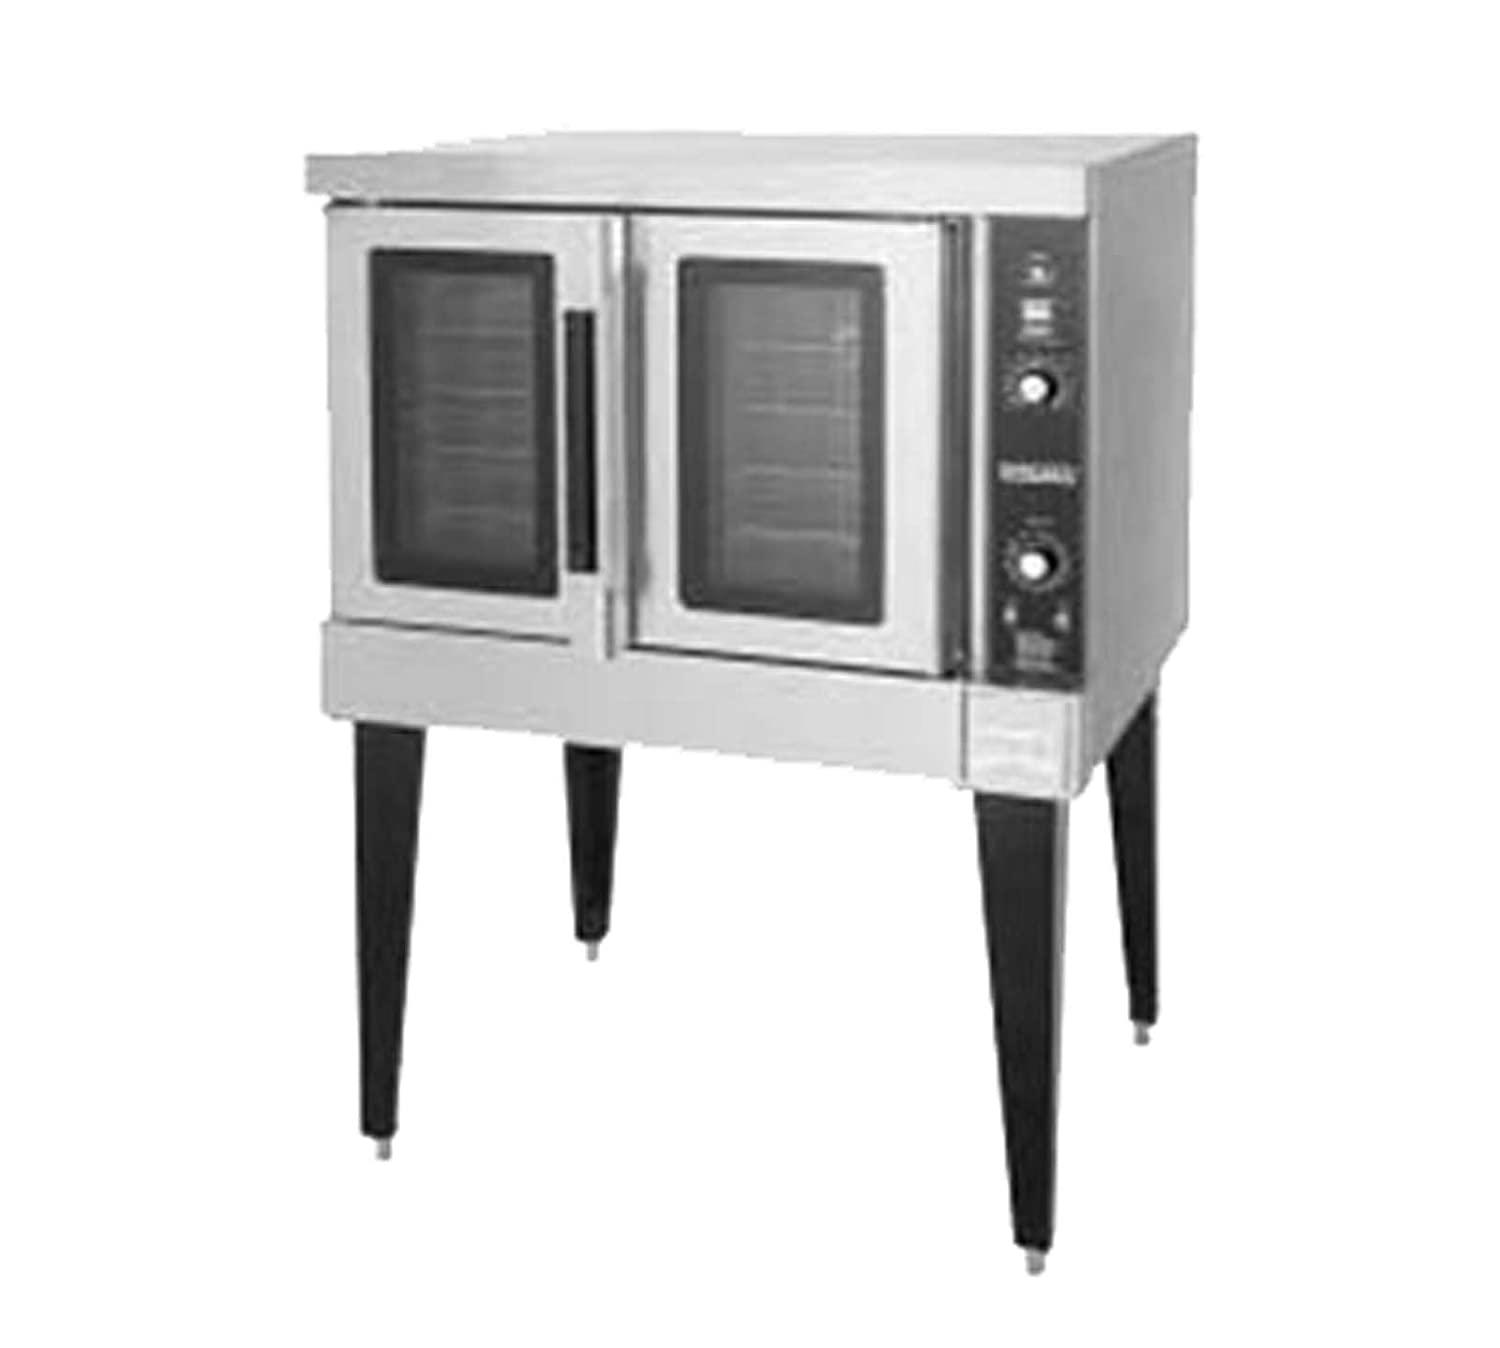 Hobart HGC501-PROPANE Oven Same day shipping Convection Topics on TV